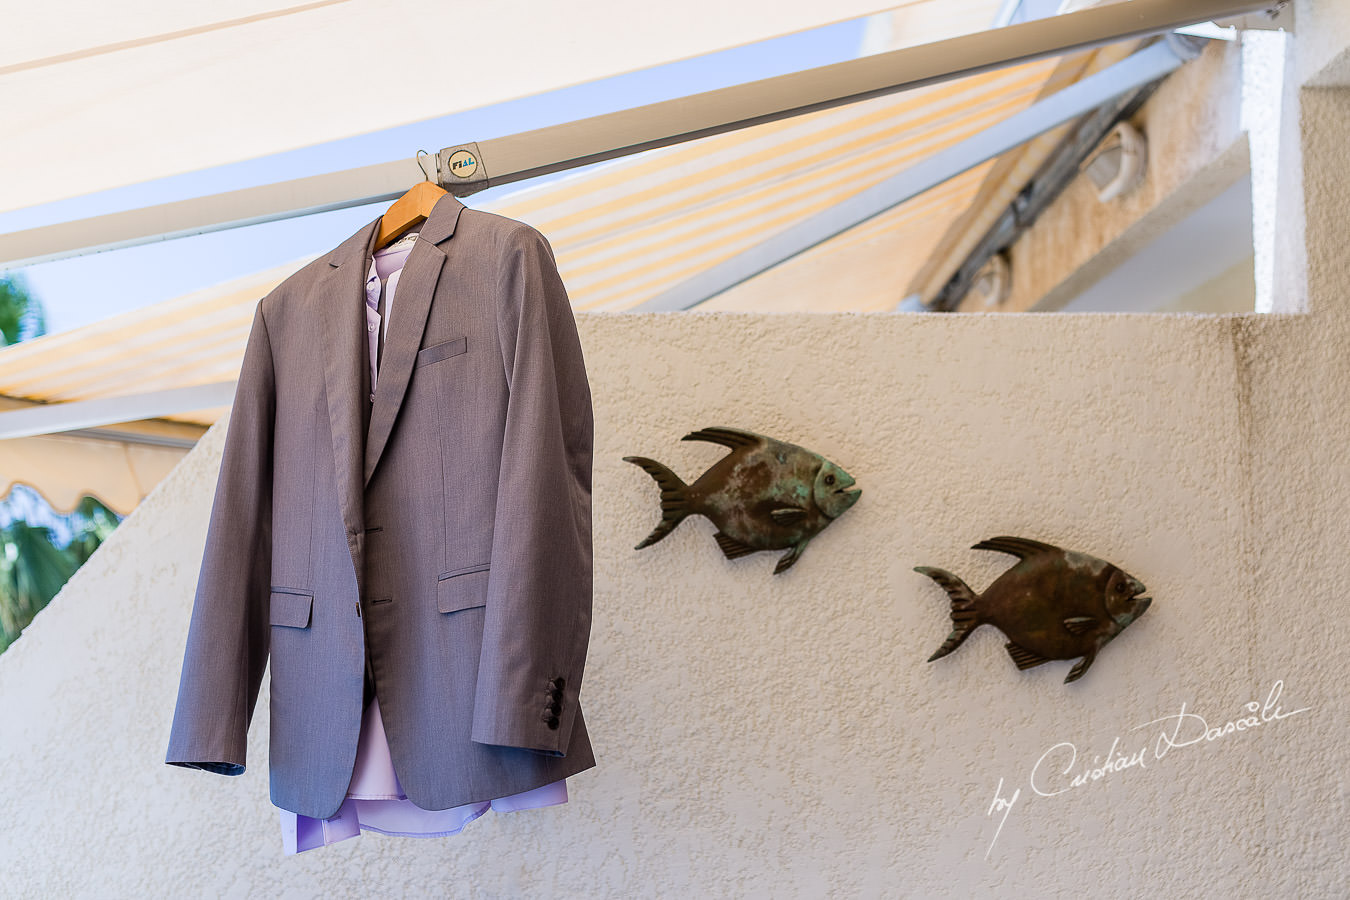 Groom's suit hanged at the groom's house during a wedding at St Raphael Limassol.